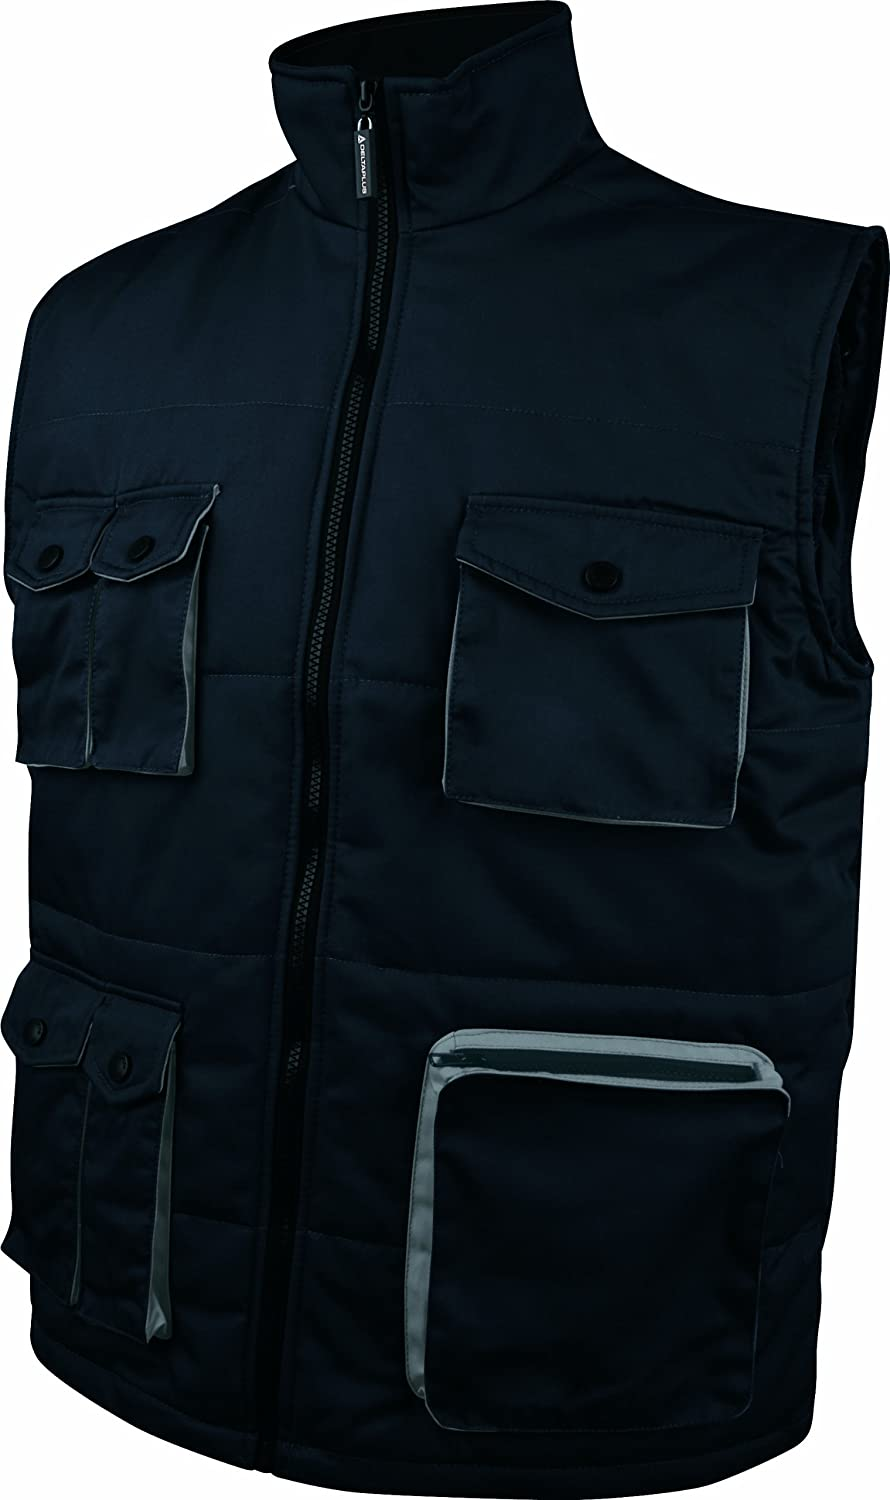 PANOPLY Gilet Stockton MACH2  Workwear Delta Plus